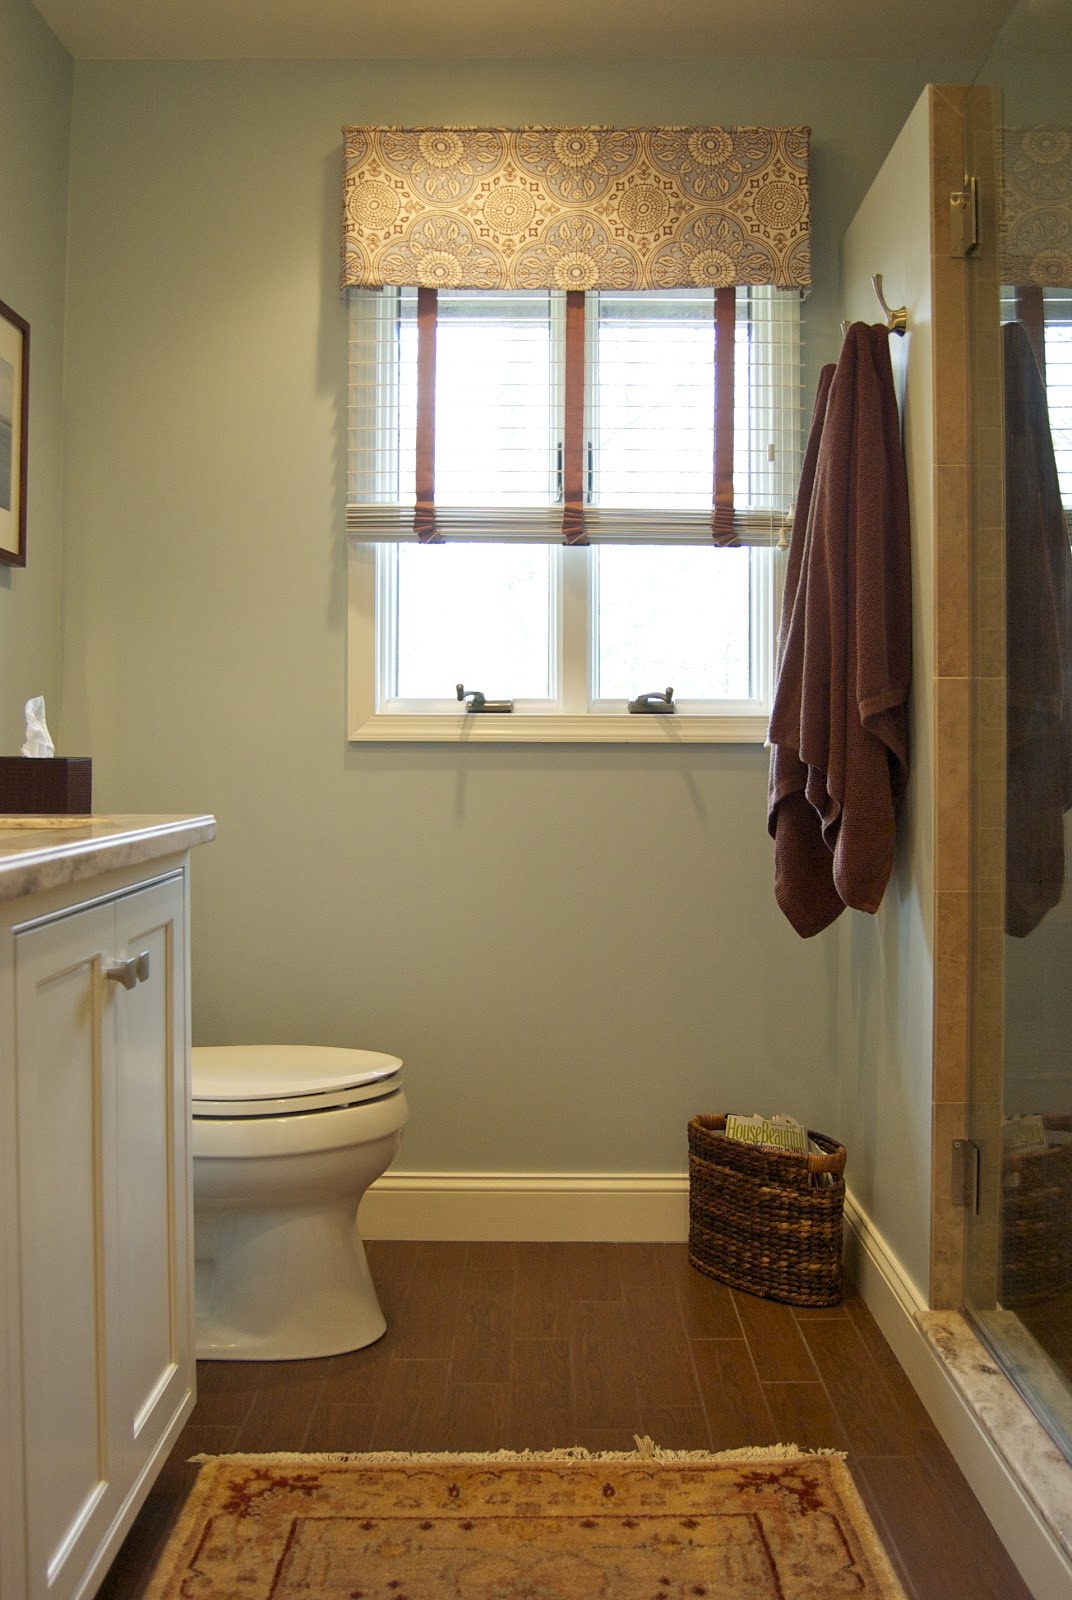 Pretty Inspirational: Recent Project: Master Bathroom ... on Restroom Renovation  id=63059